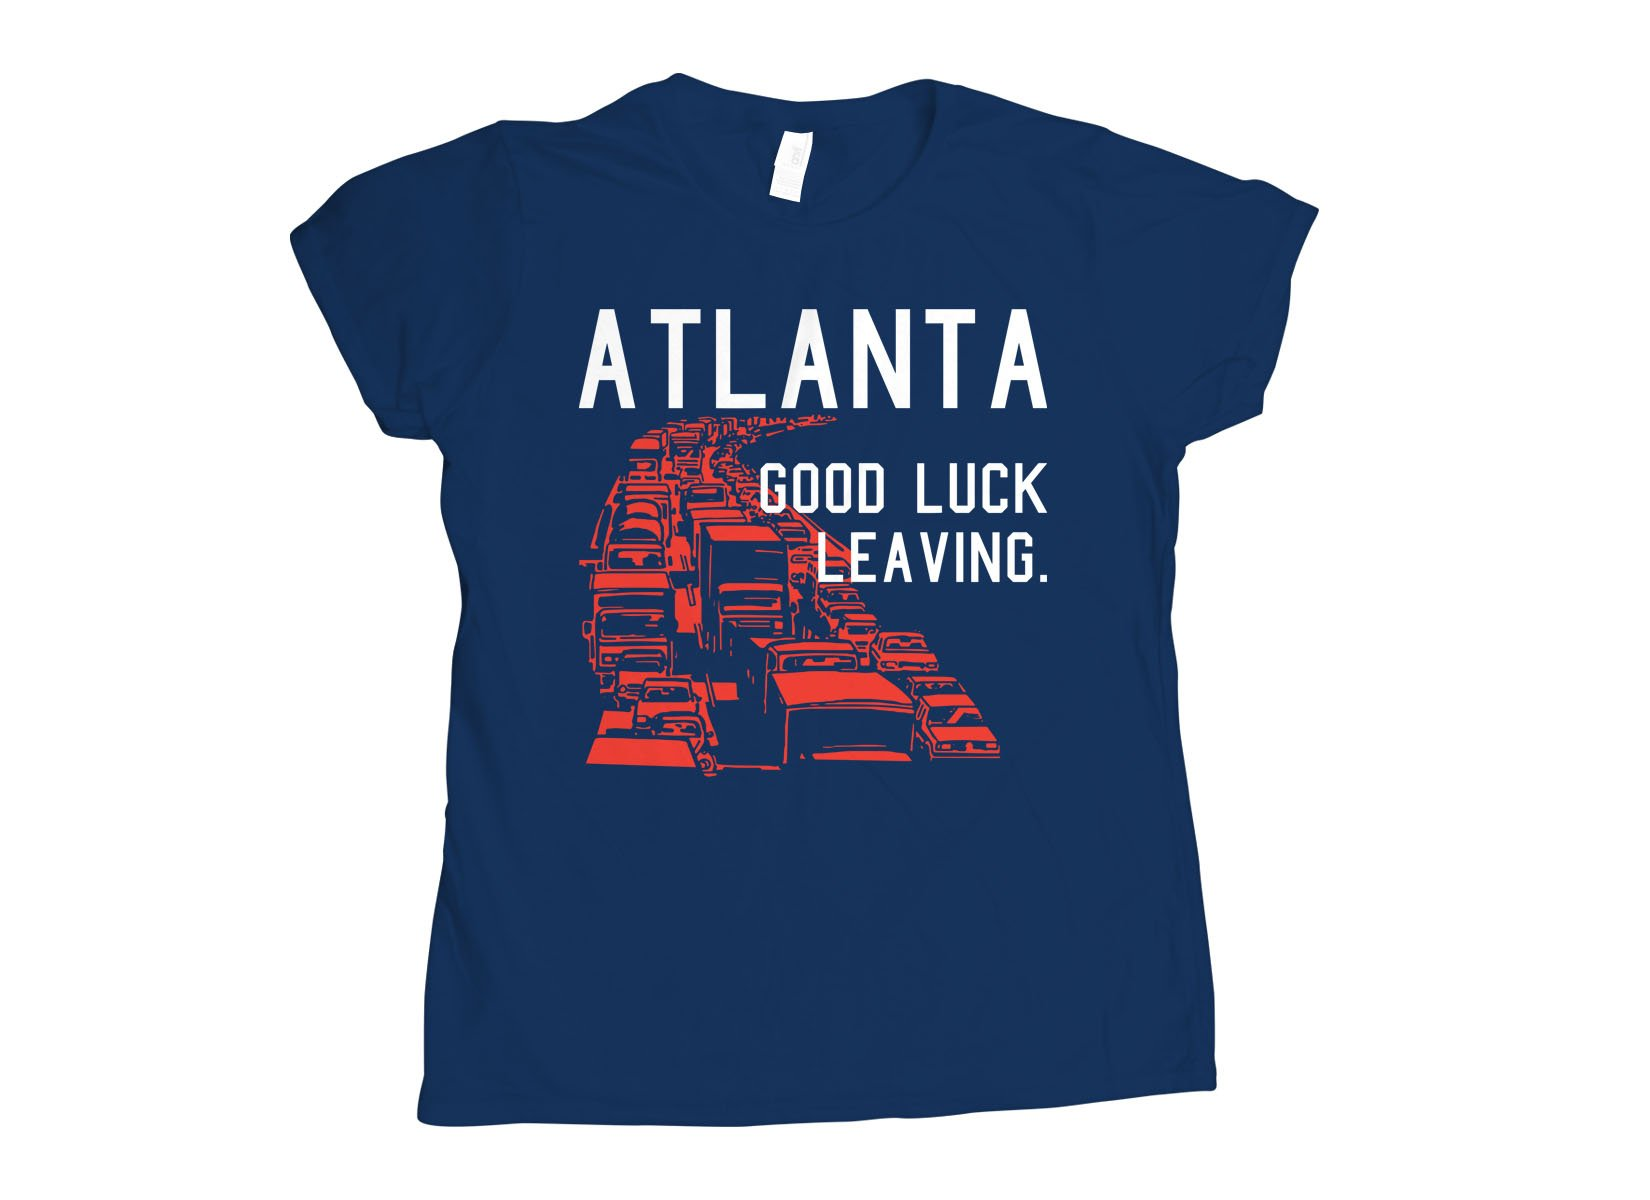 Atlanta, Good Luck Leaving. on Womens T-Shirt